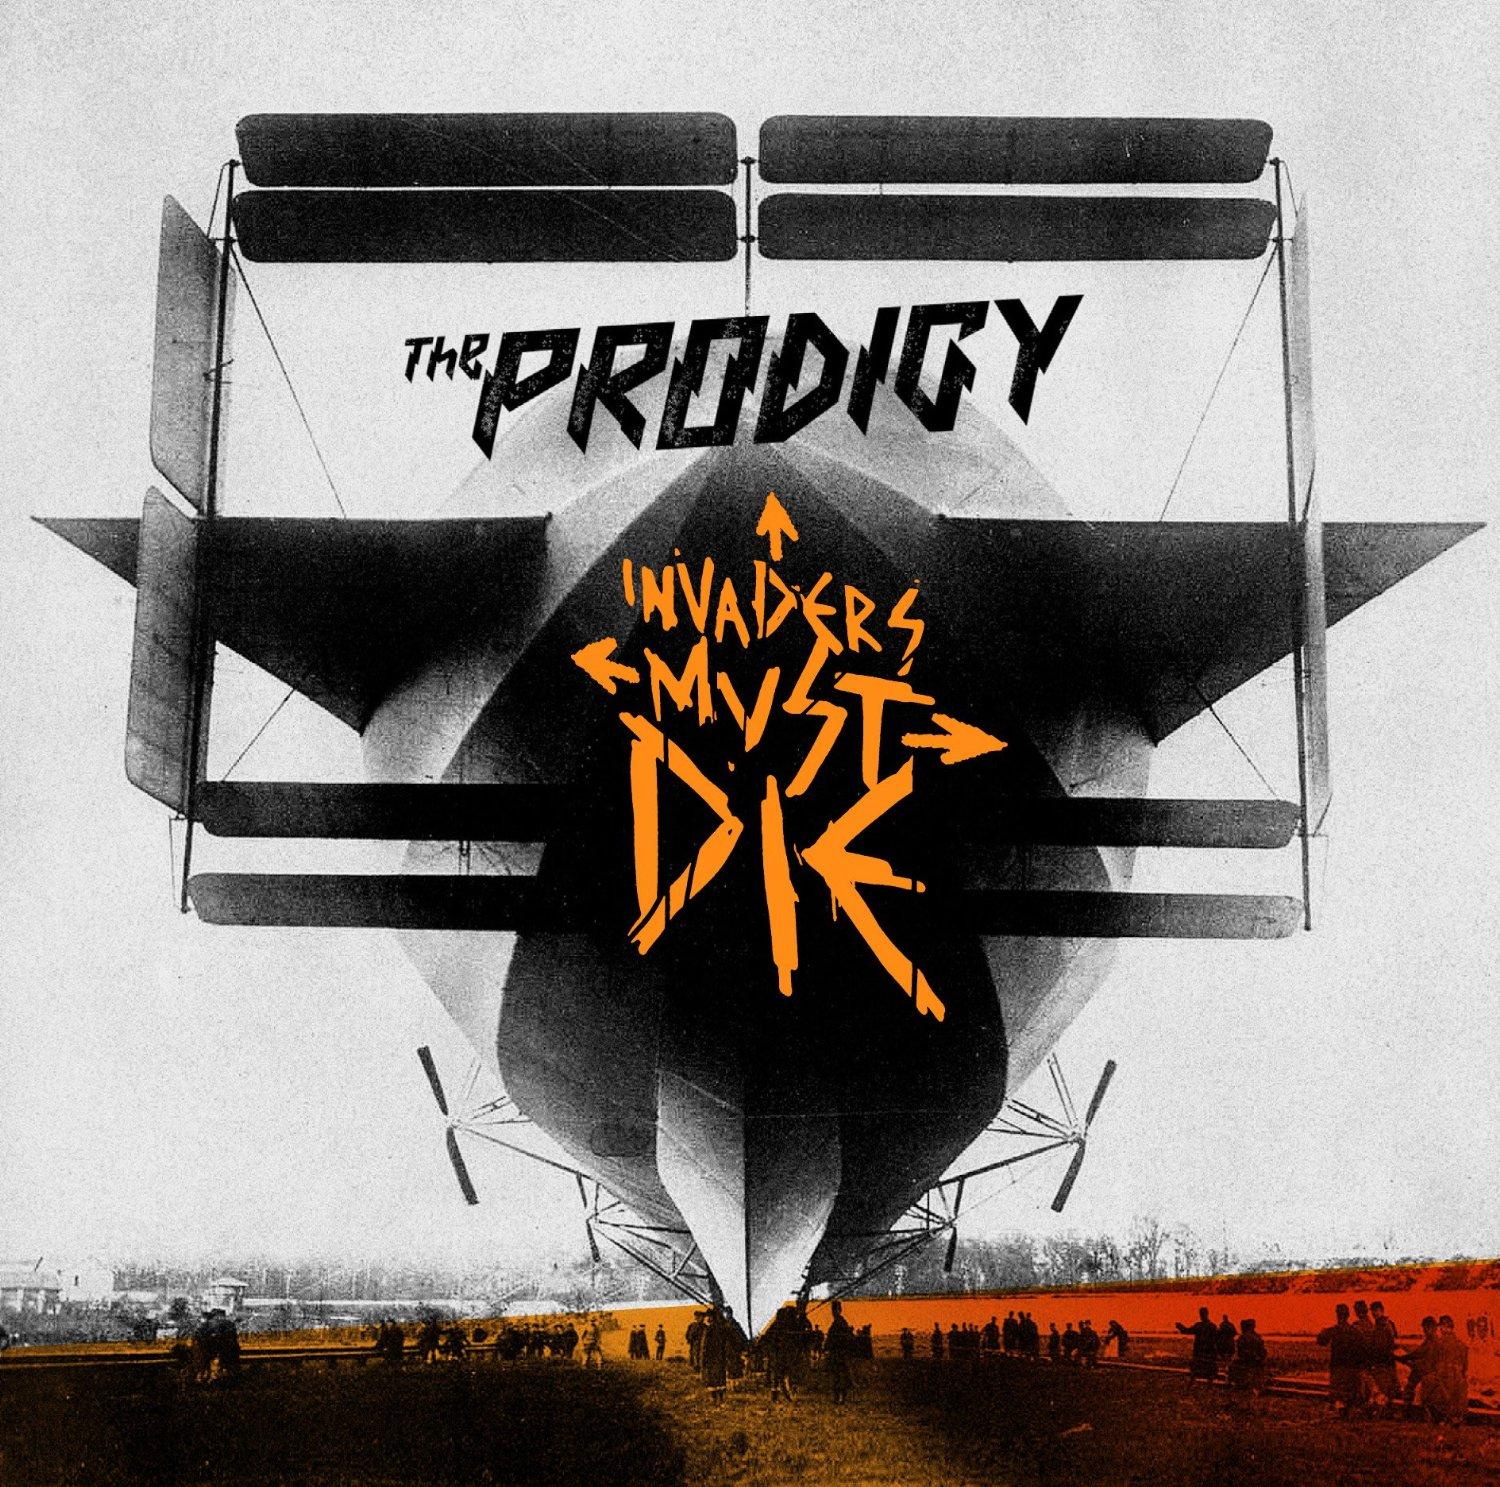 Brutal And Brilliant: The Prodigy's Invaders Must Die